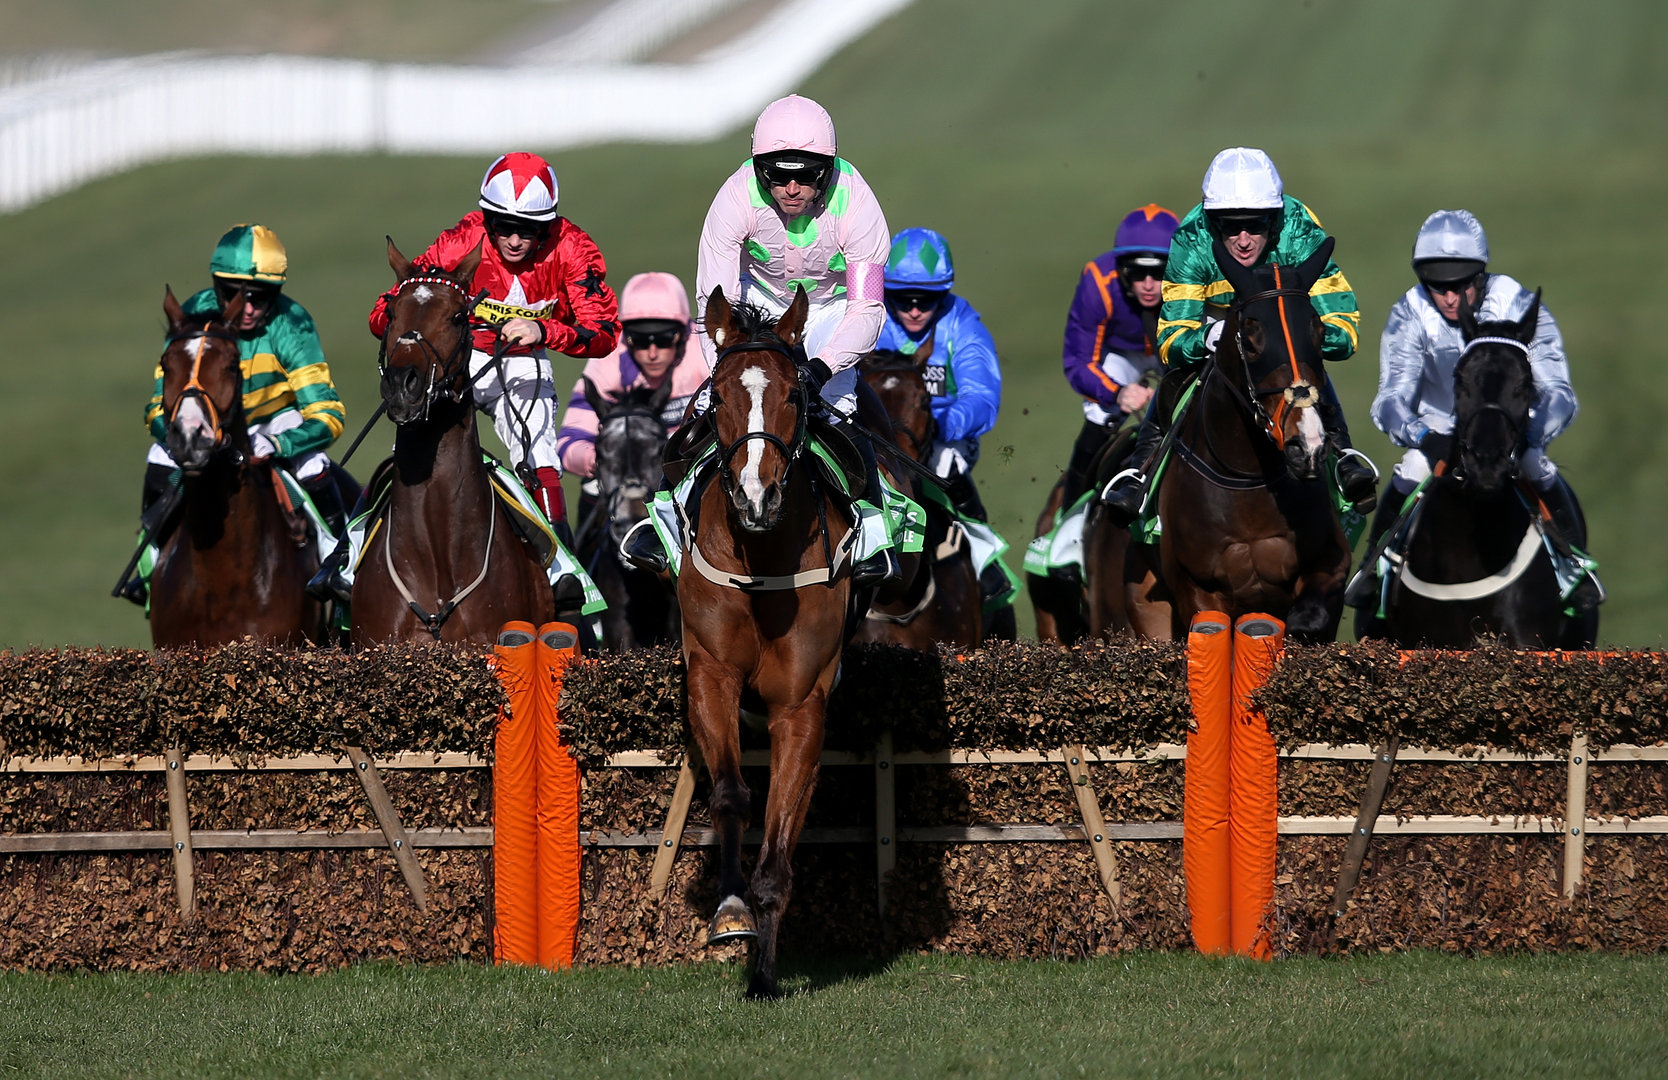 Faugheen ridden by Ruby Walsh on their way to victory in the Stan James Champion Hurdle Challenge Trophy © Cheltenham Racecourse